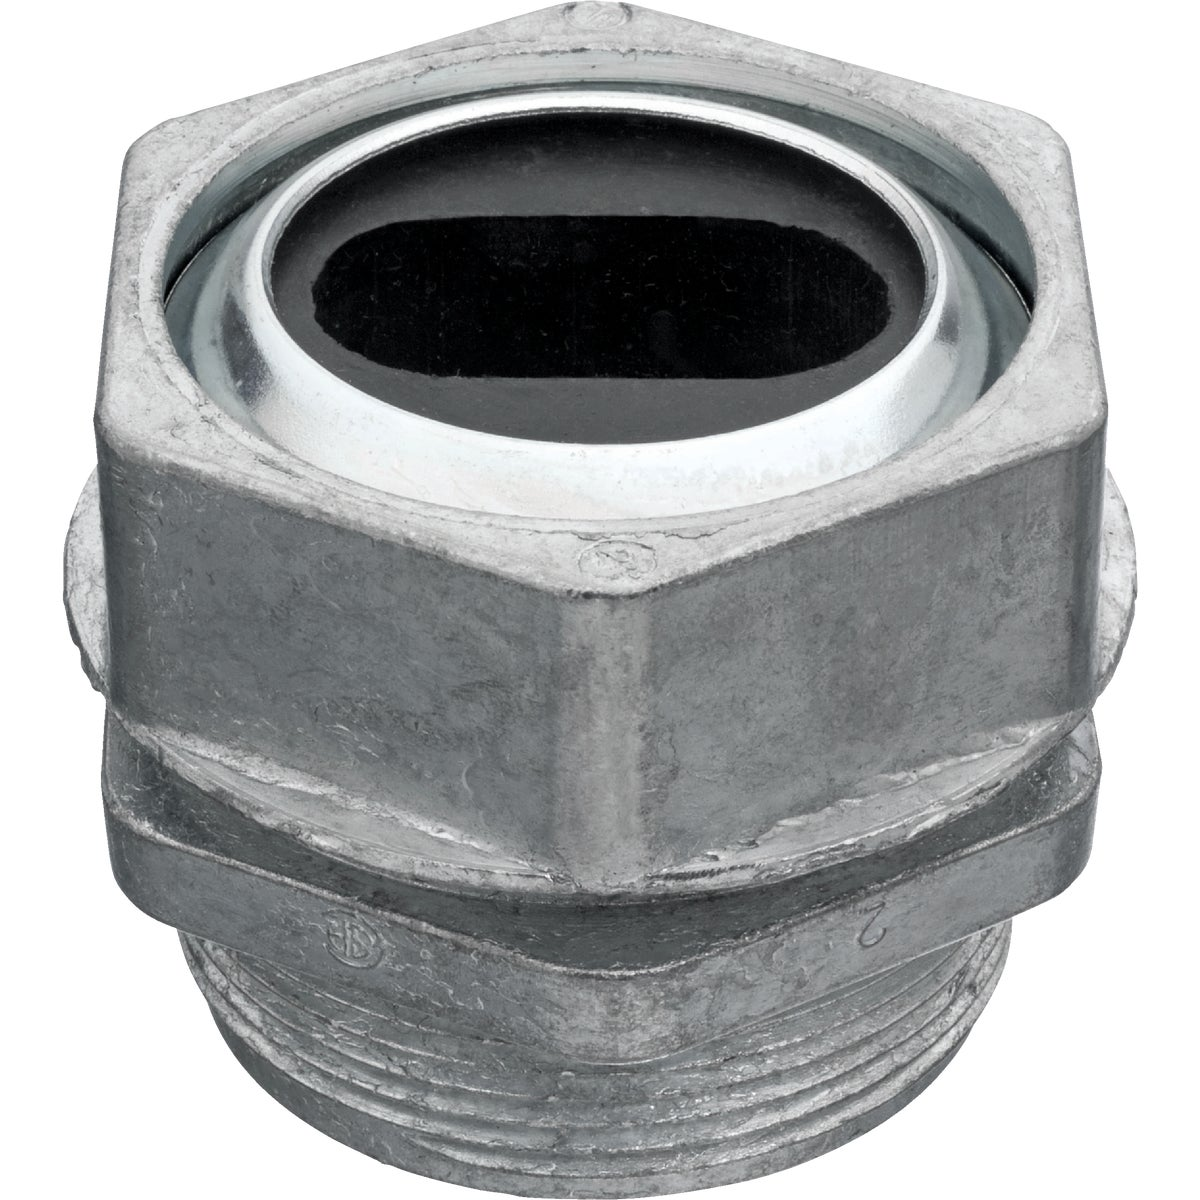 "1"" WATERTITE CONNECTOR - WT203C1 by Thomas & Betts"